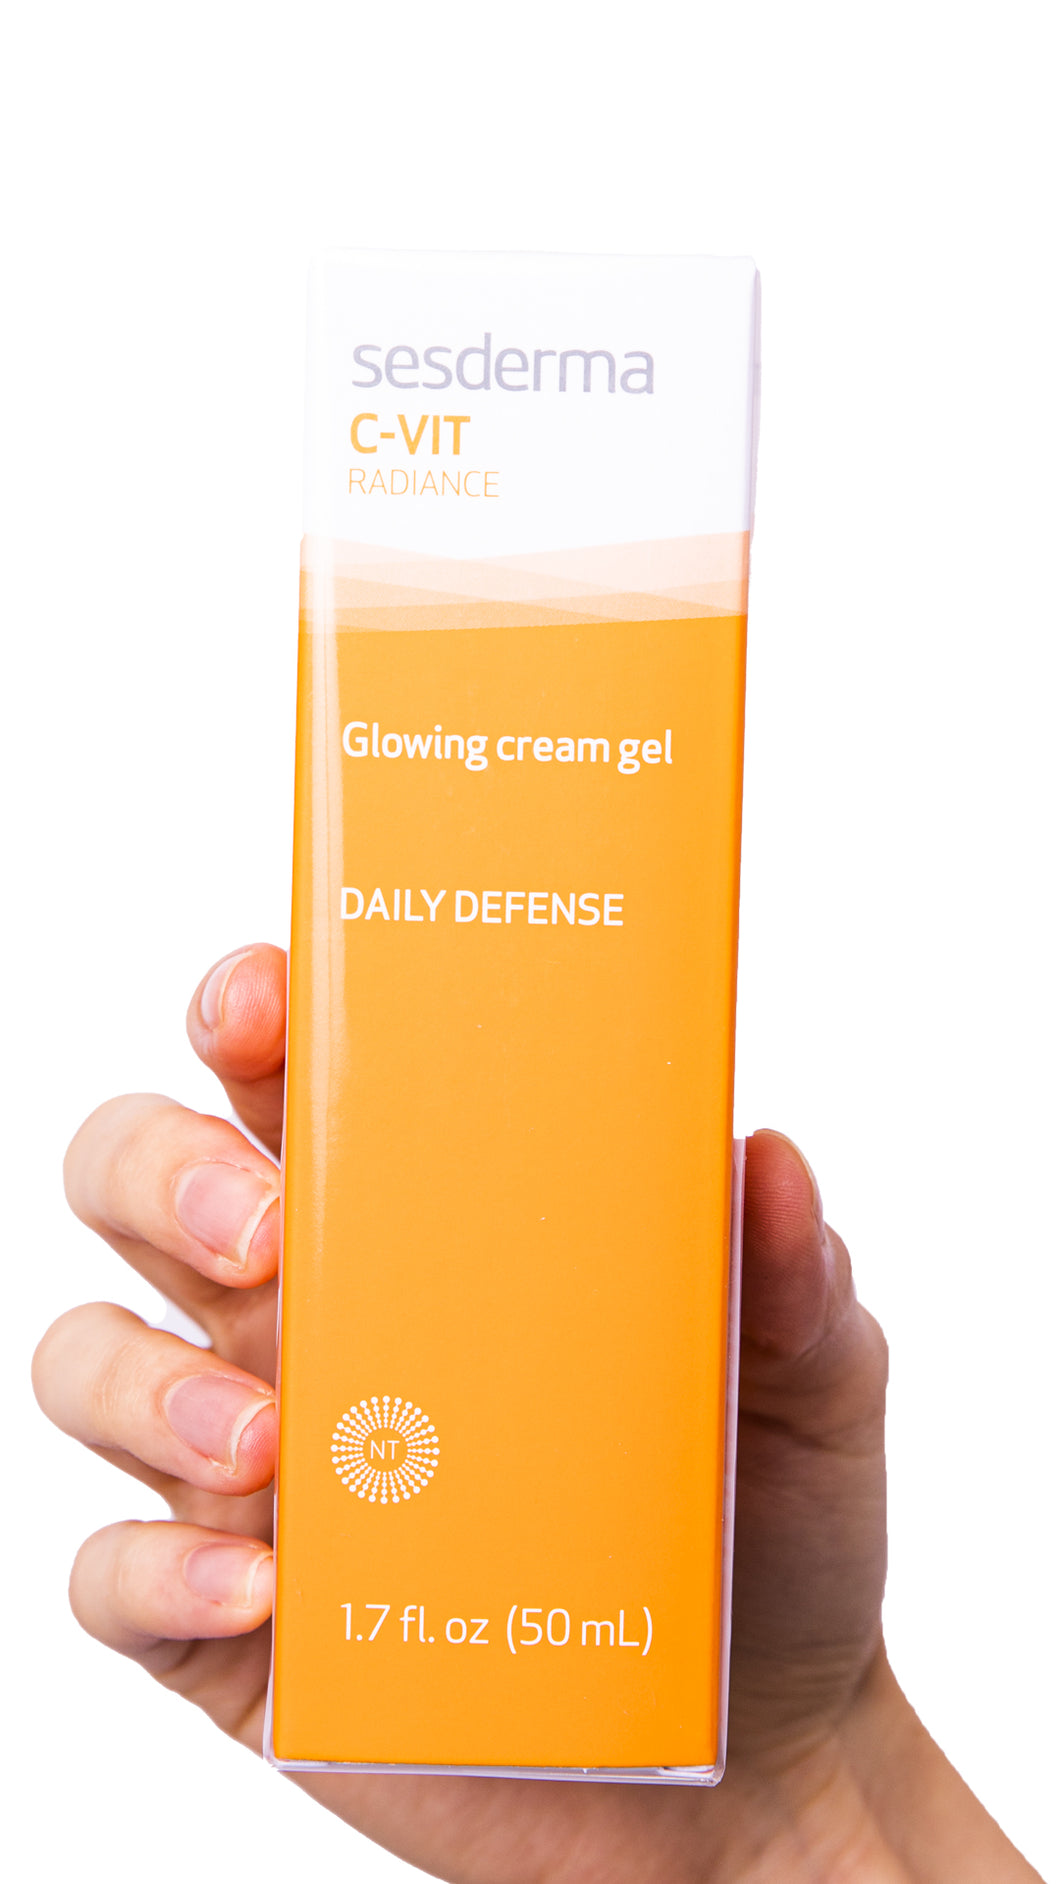 Sesderma C-VIT RADIANCE Glowing Cream Gel 1.7 fl. oz